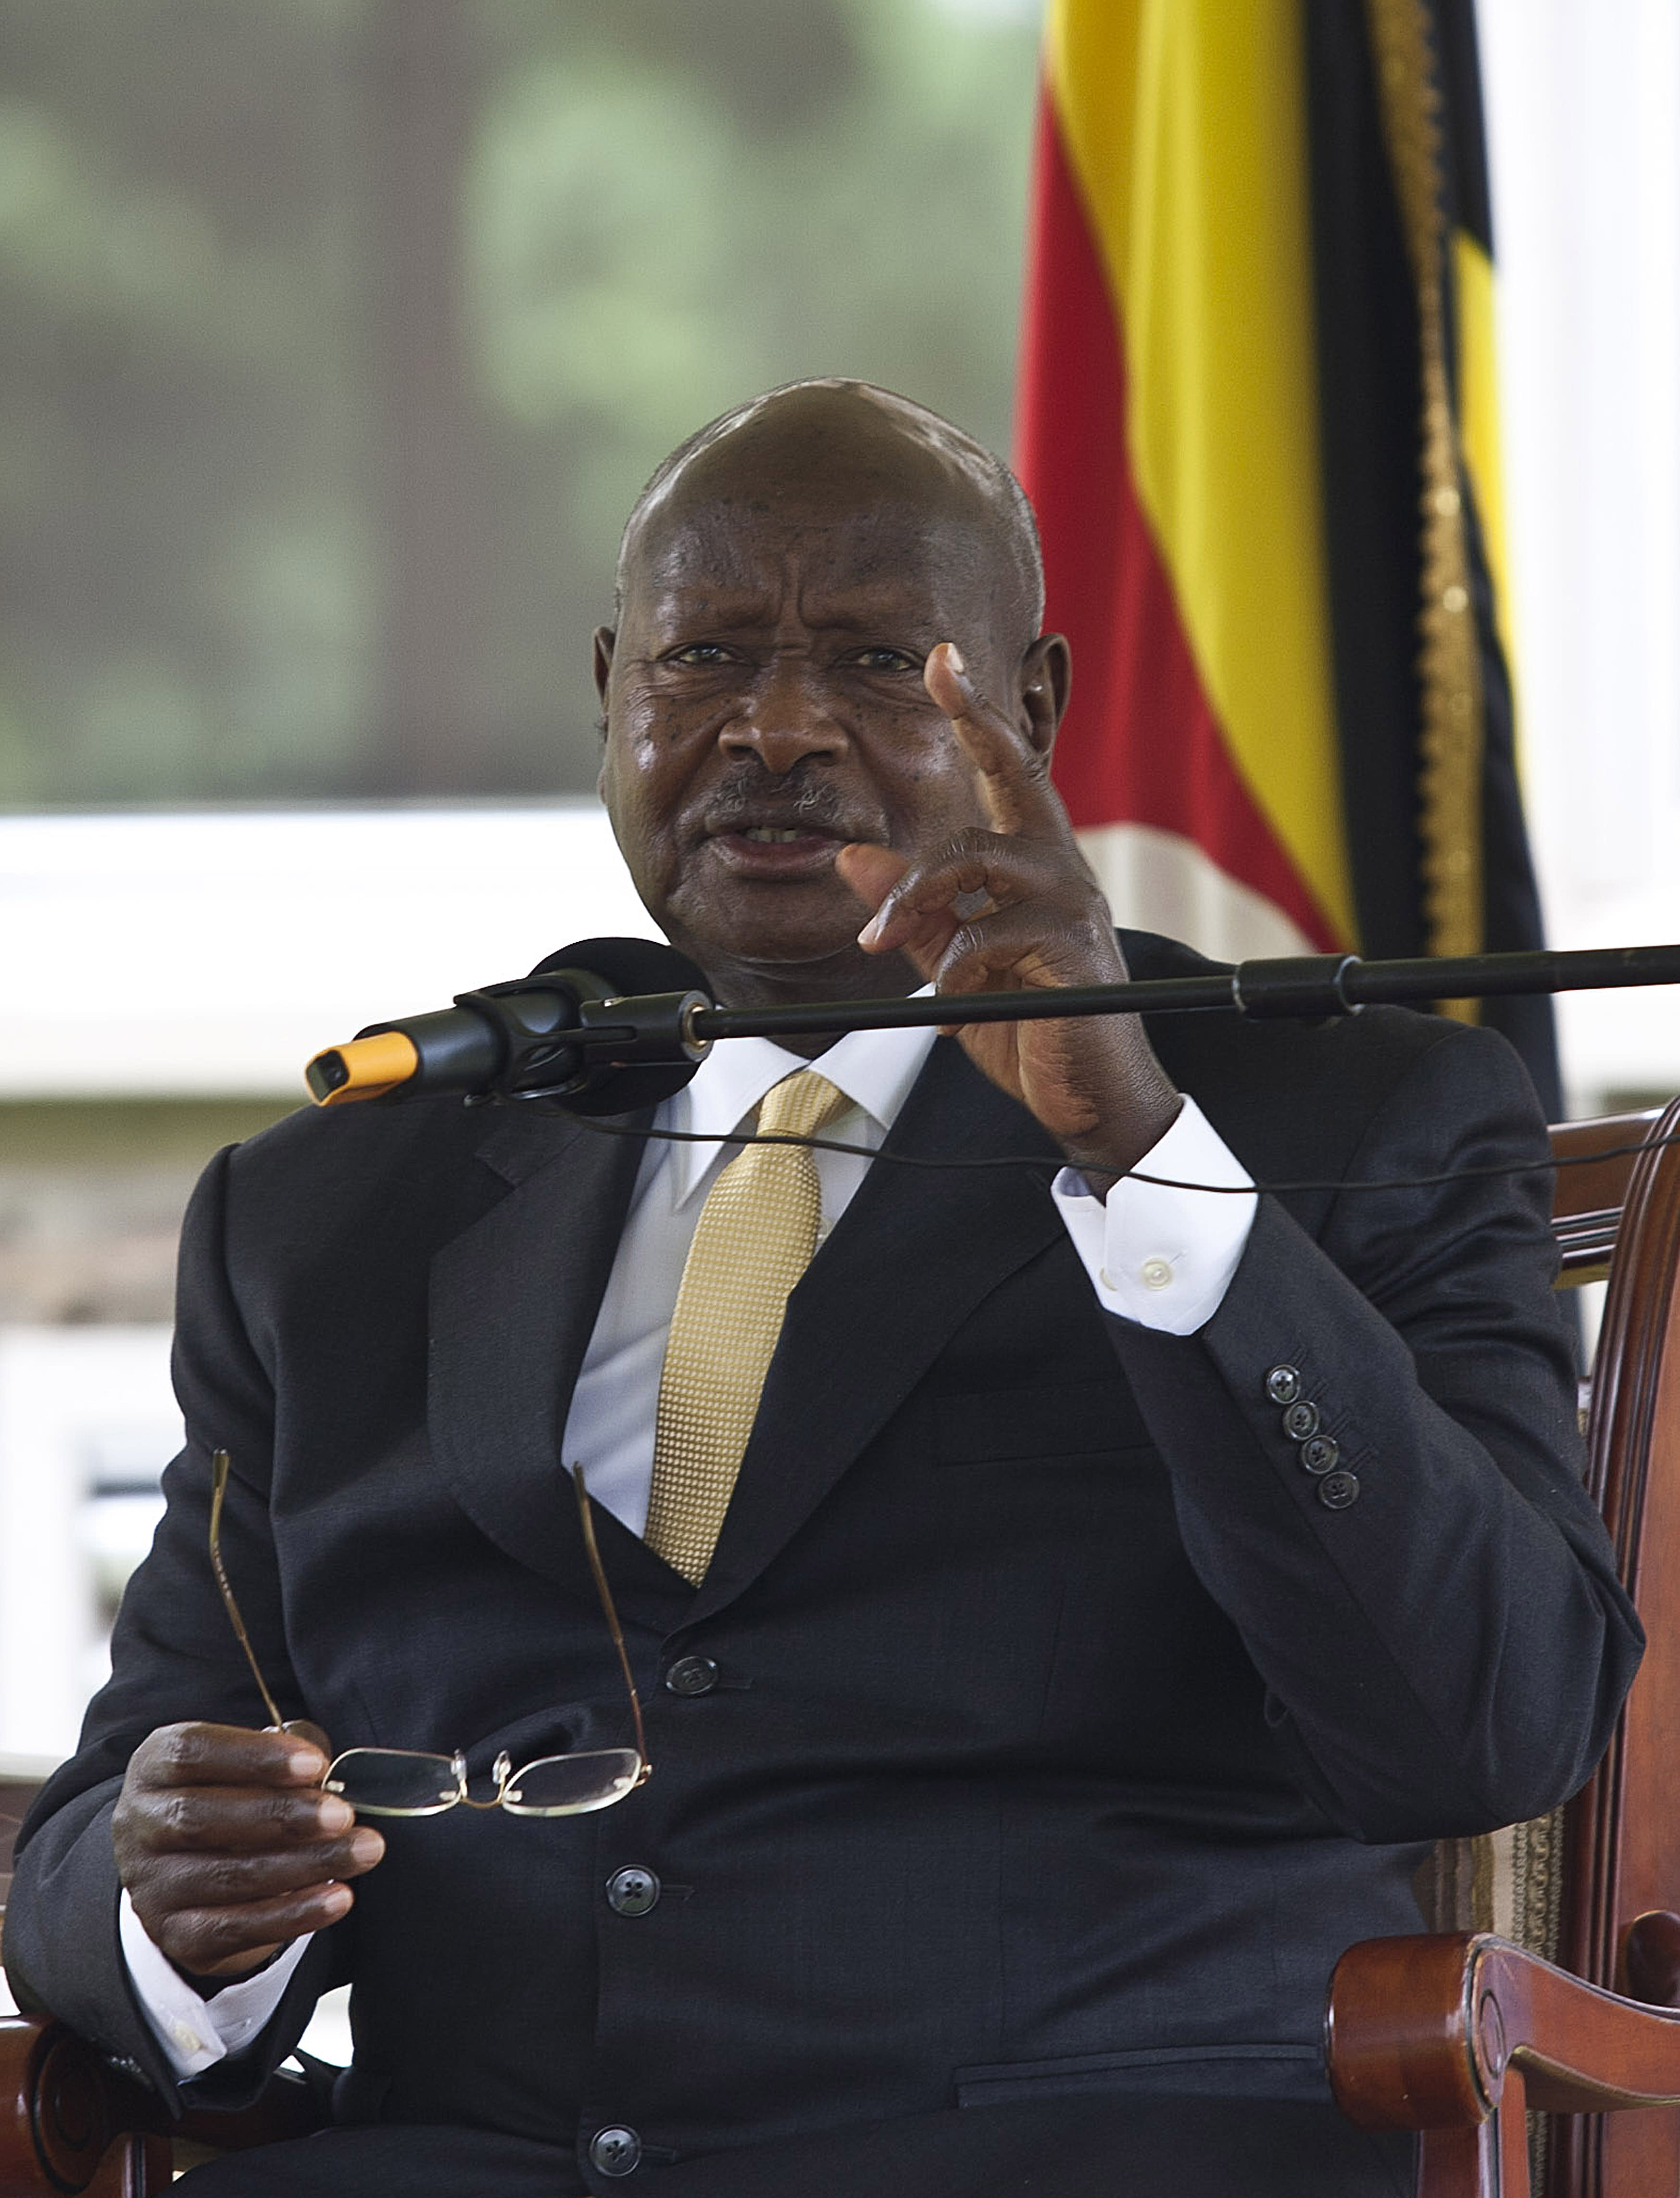 Ugandan President Yoweri Museveni, seen here on August 2, 2014 in Kampala, tells people to refrain from shaking hands amid virus threats (AFP Photo/Isaac Kasamani)